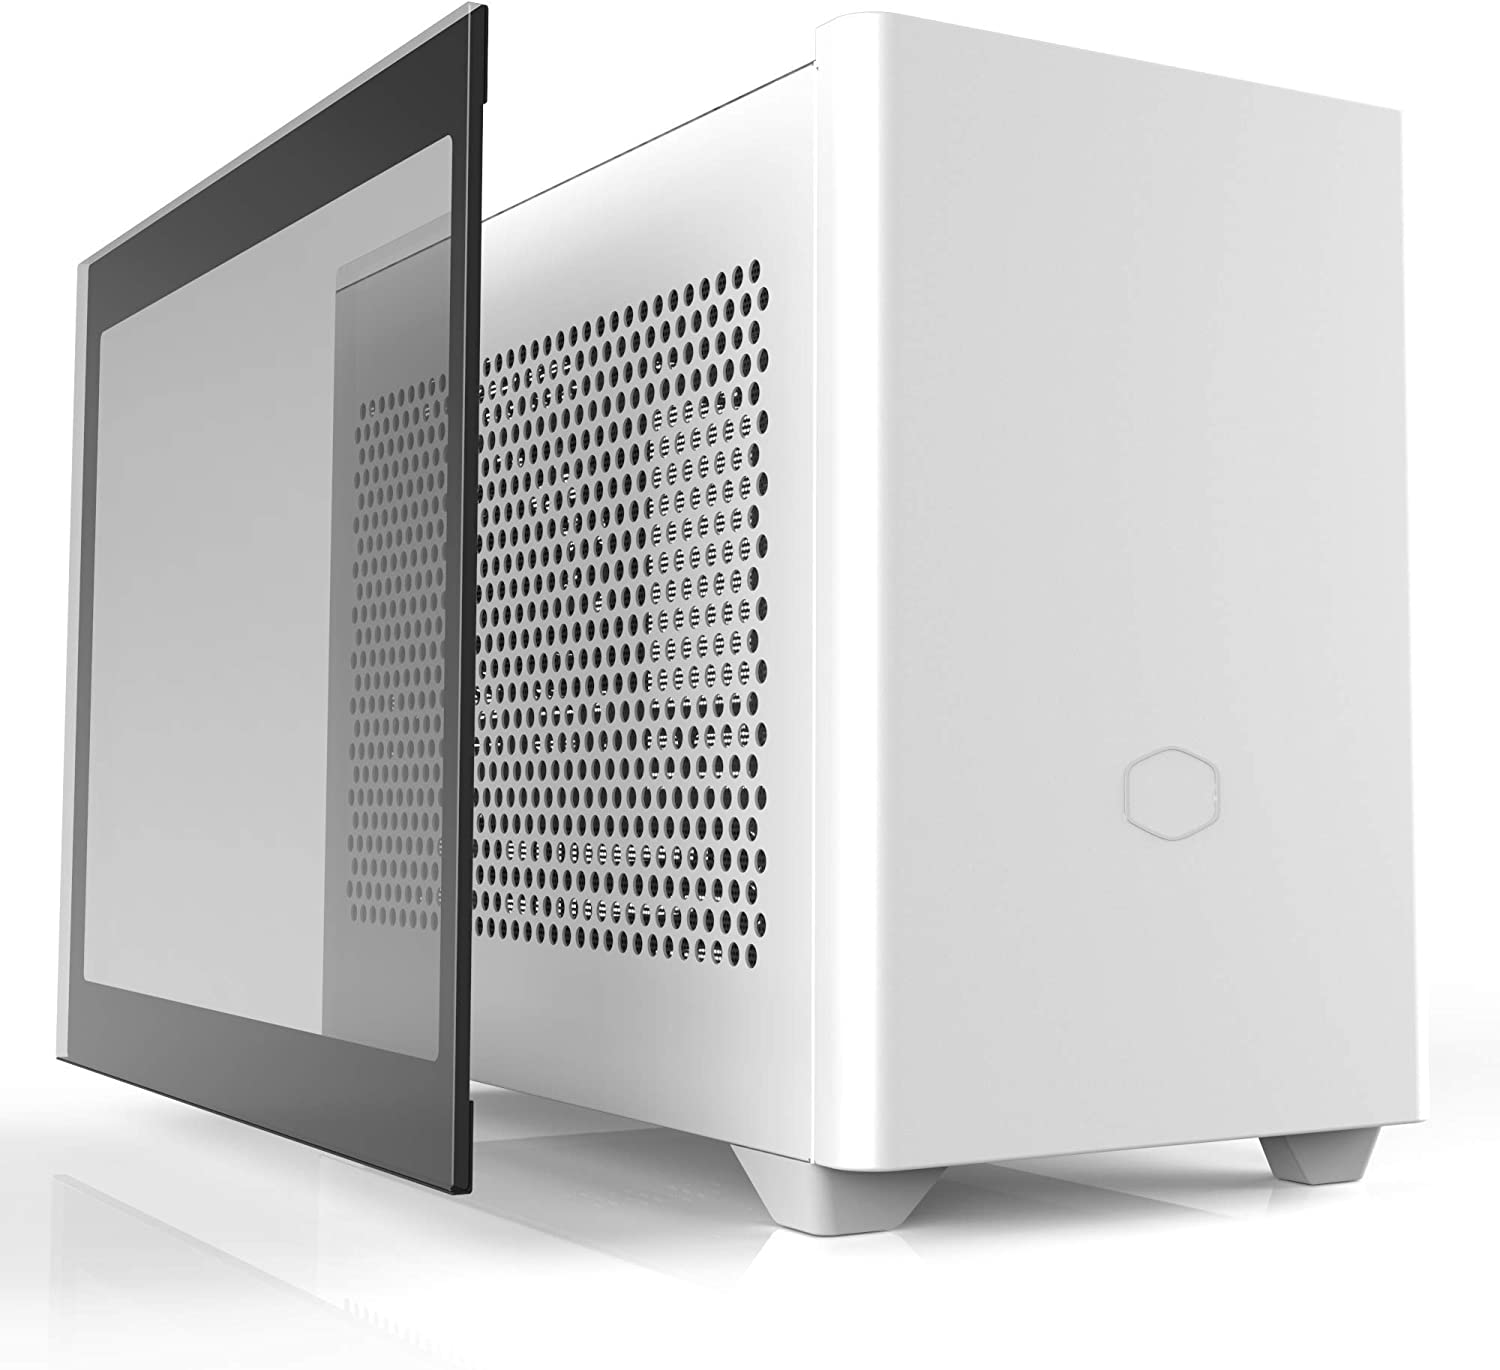 Cooler Master NR200P White SFF Small Form Factor Mini-ITX Case with Tempered Glass or Vented Panel Option, PCI Riser Cable, Triple-Slot GPU, Tool-Free and 360 Degree Accessibility